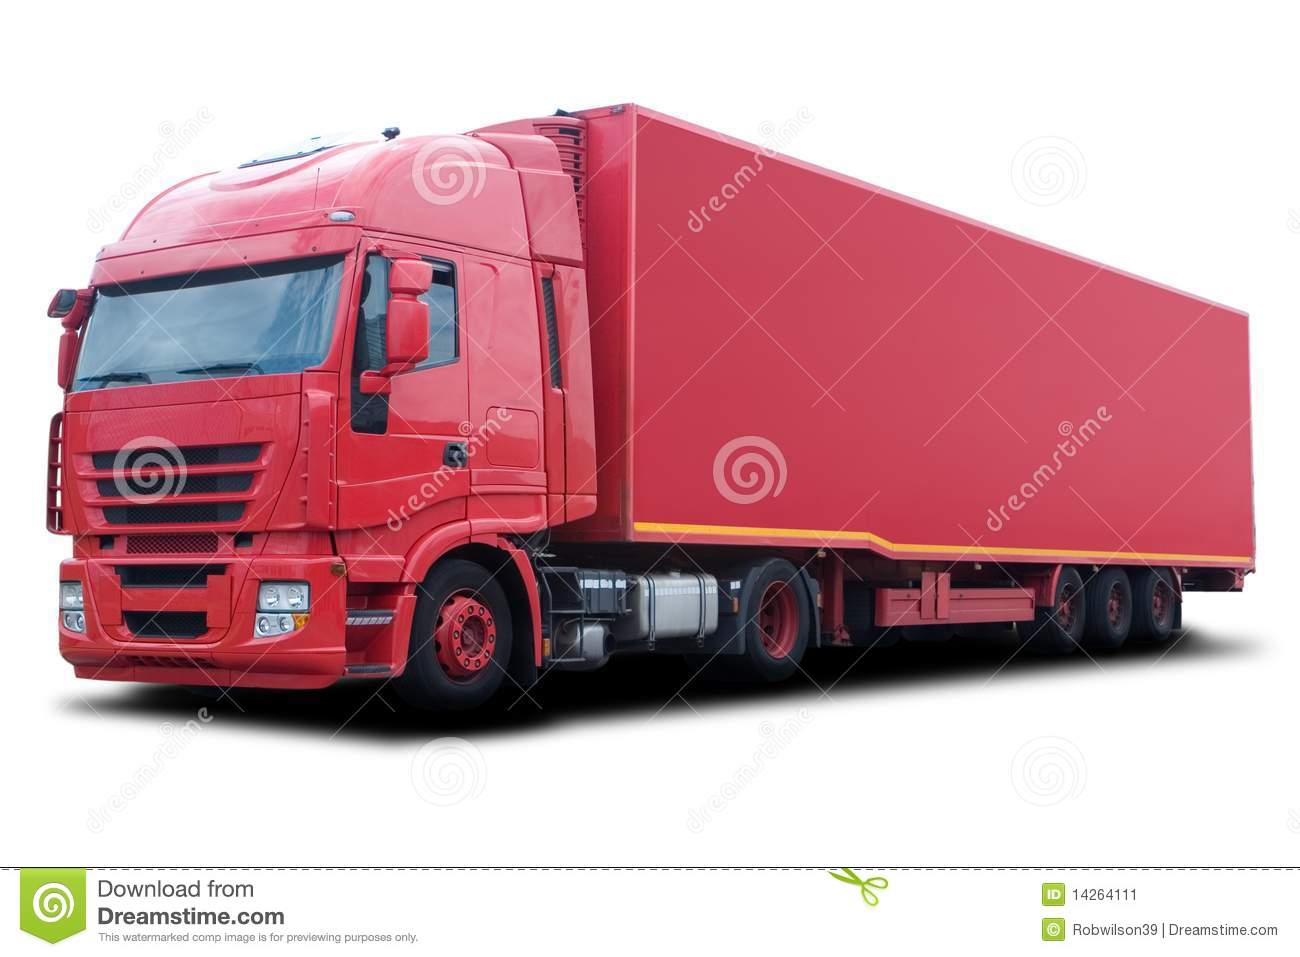 Red Truck Stock Image - Image: 14264111